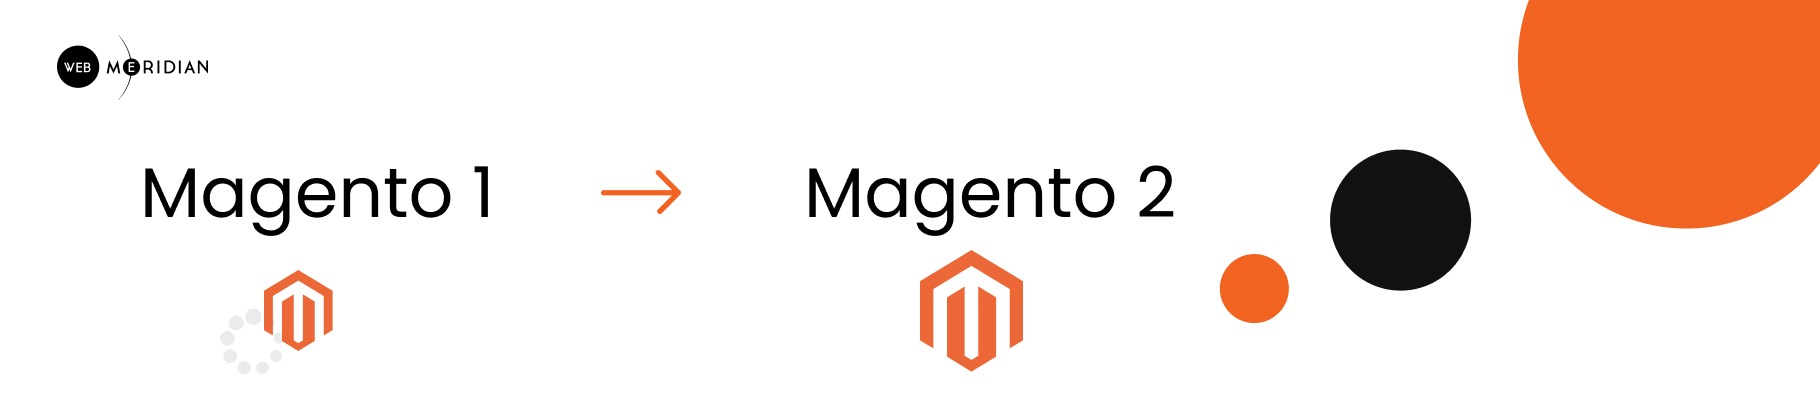 Magento 1.9 End of Life